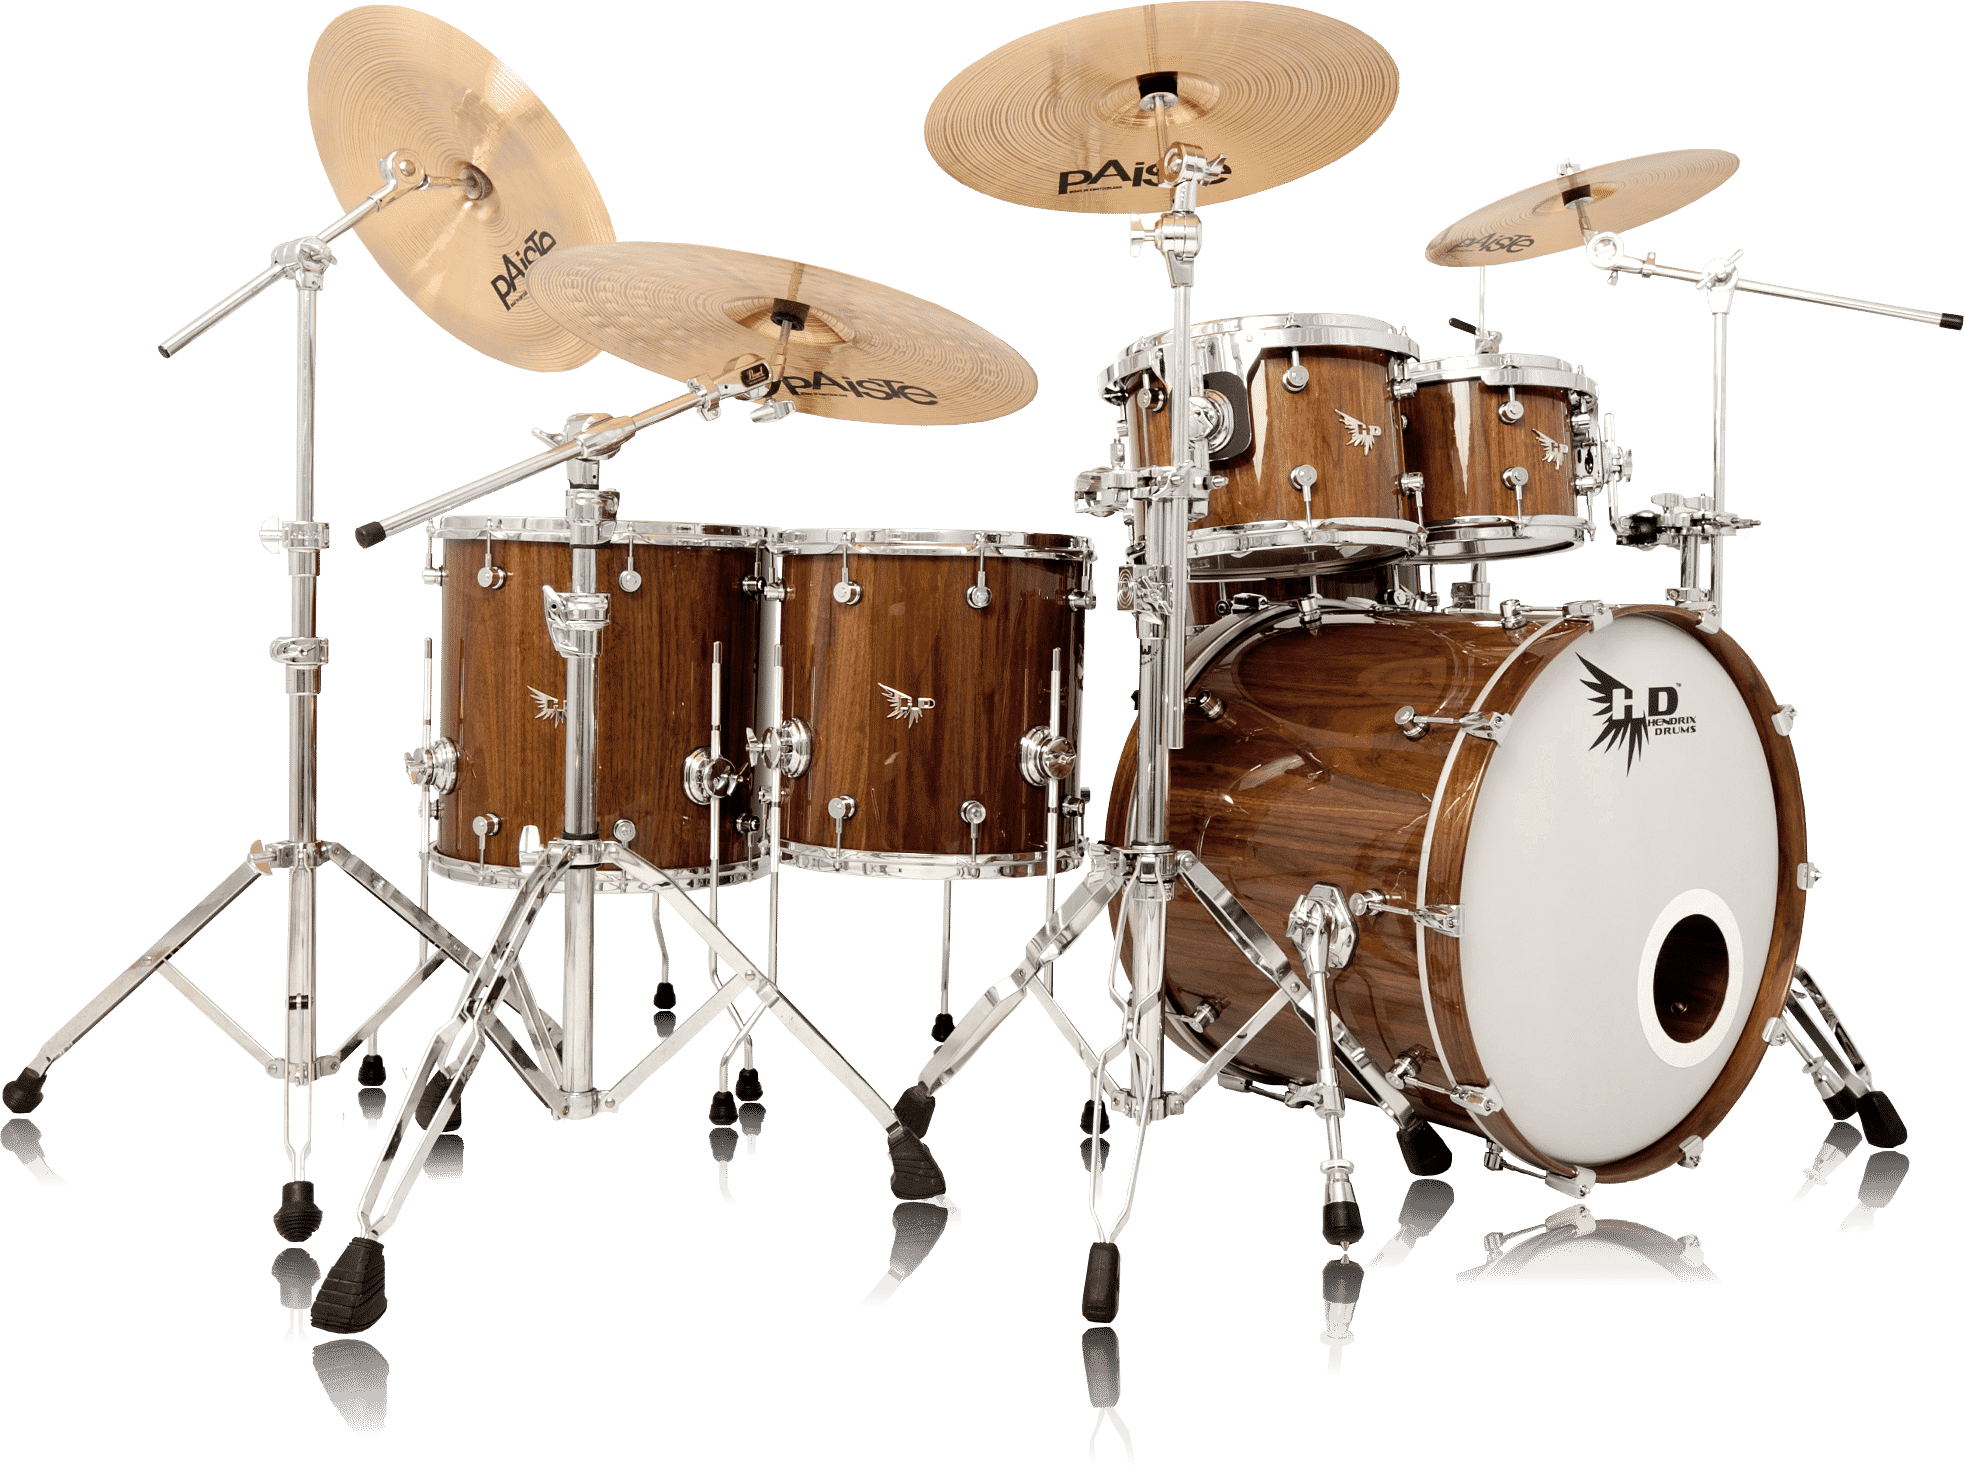 The World's Best Drums Are Made in...Detroit?